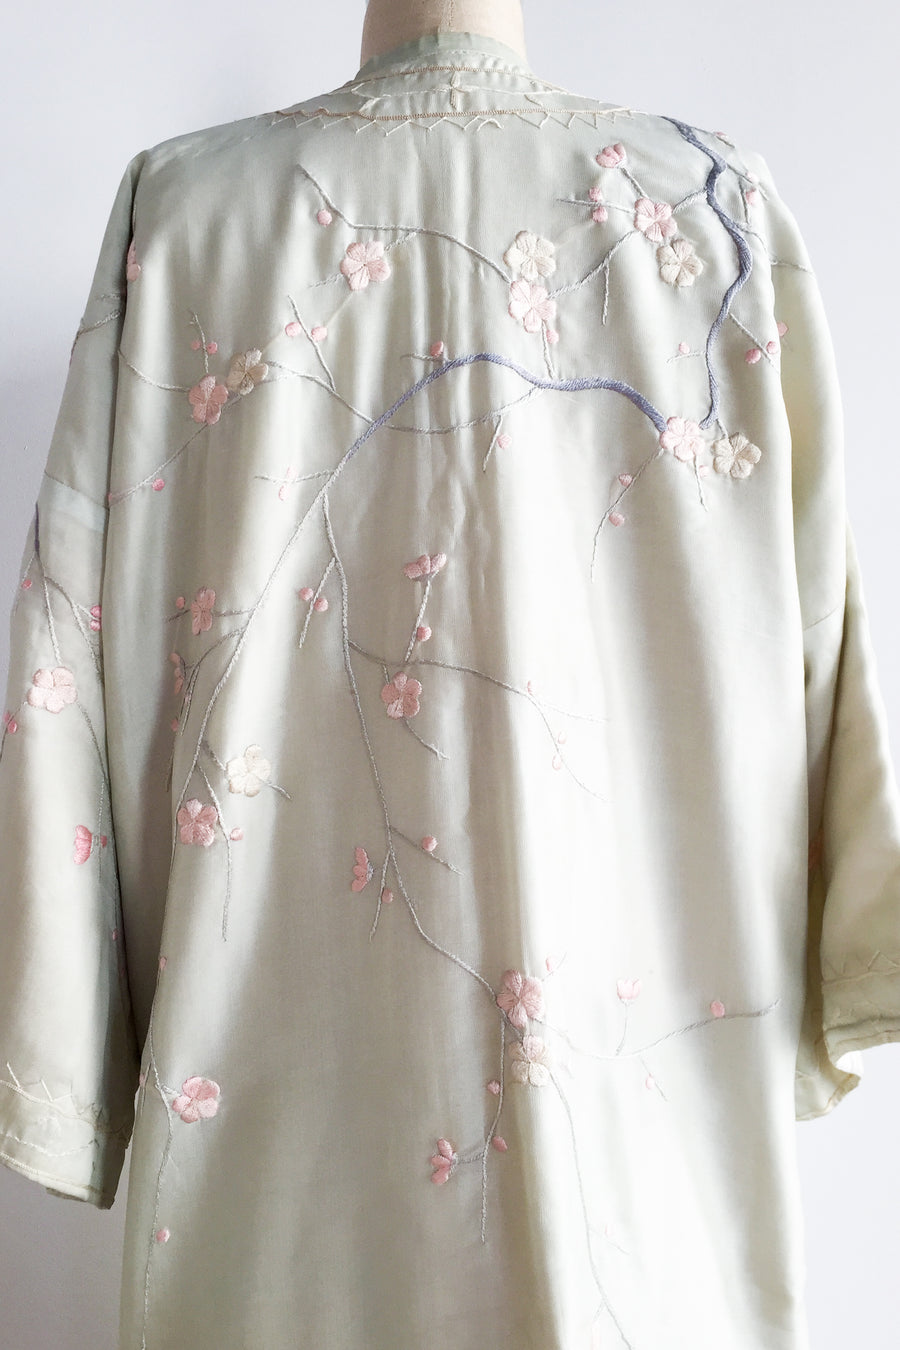 1910s/20s Light Green Embroidered Robe - One Size